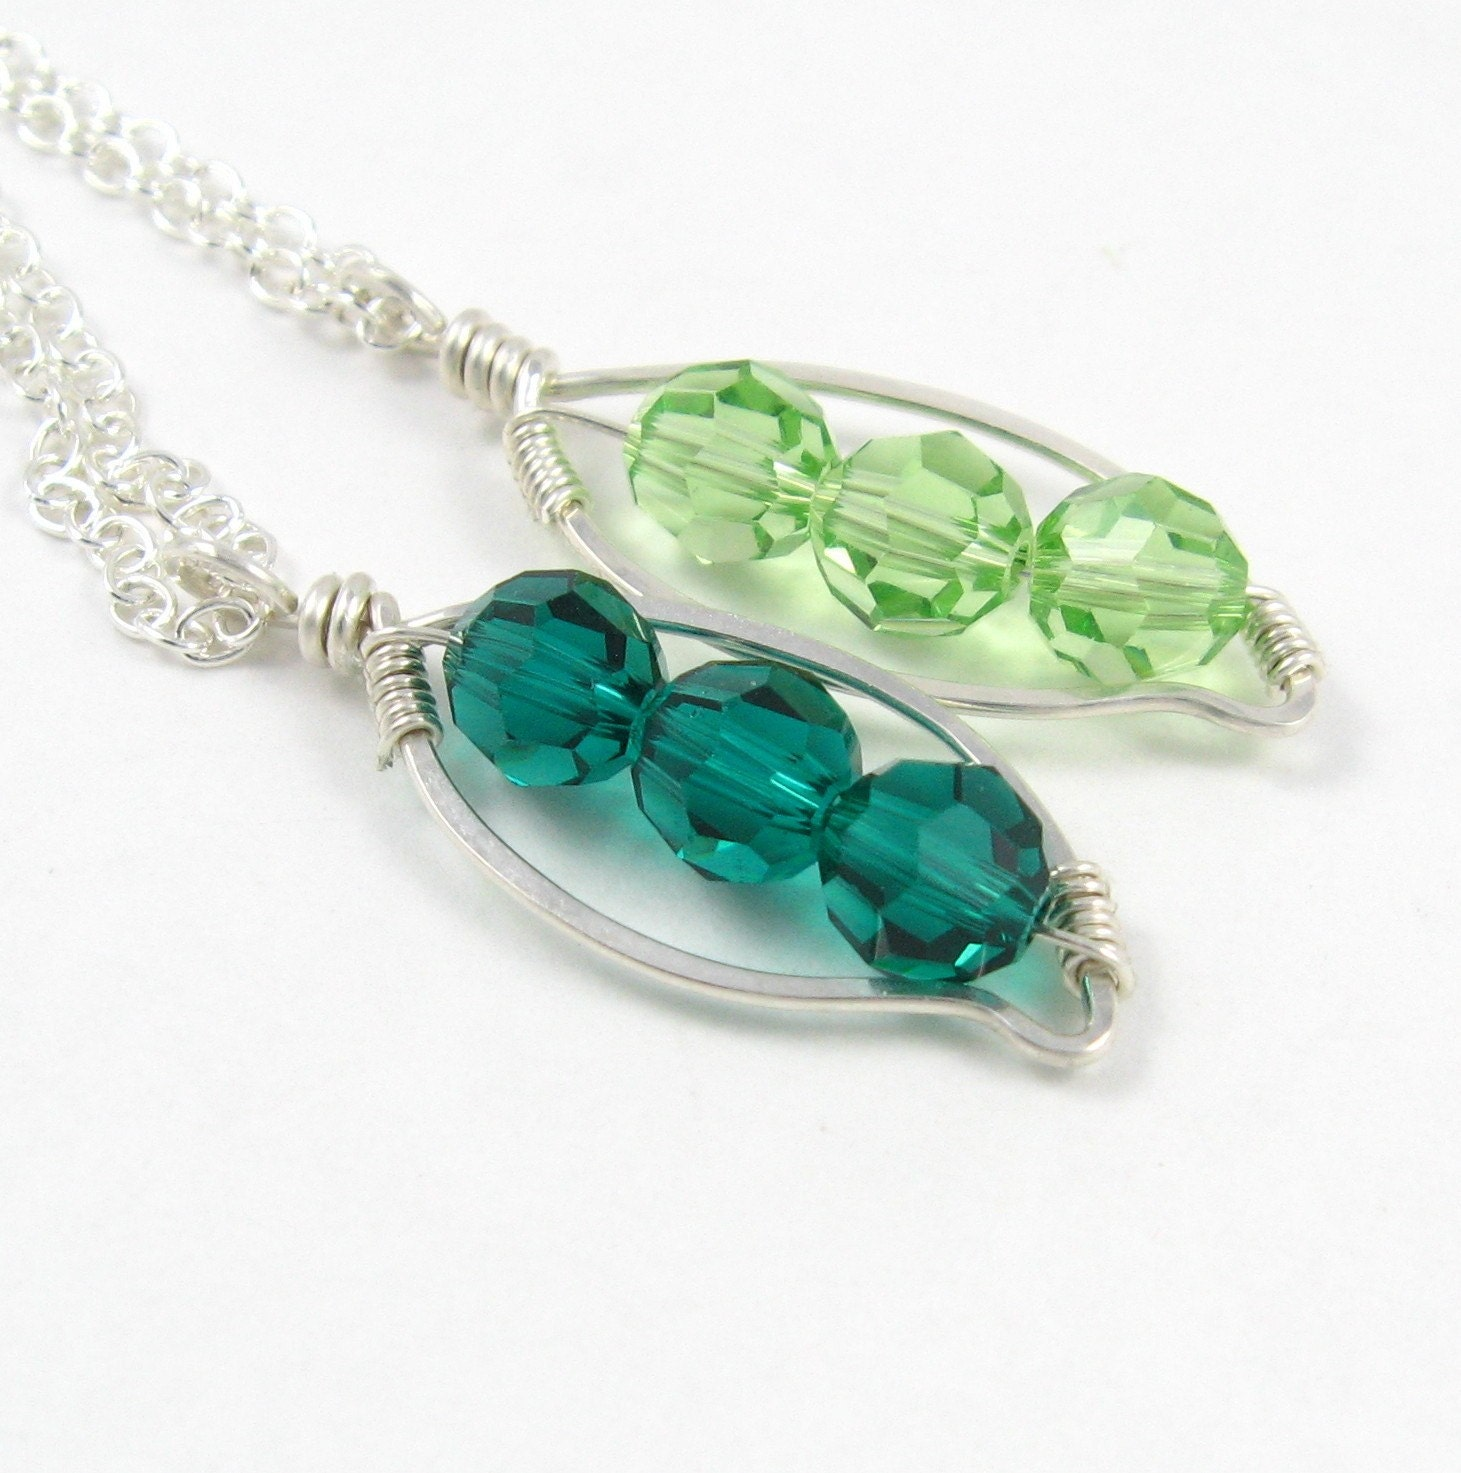 Pea Pod Peapod Swarovski Mother's Necklace Sterling Silver Swarovski Crystal Emerald Green